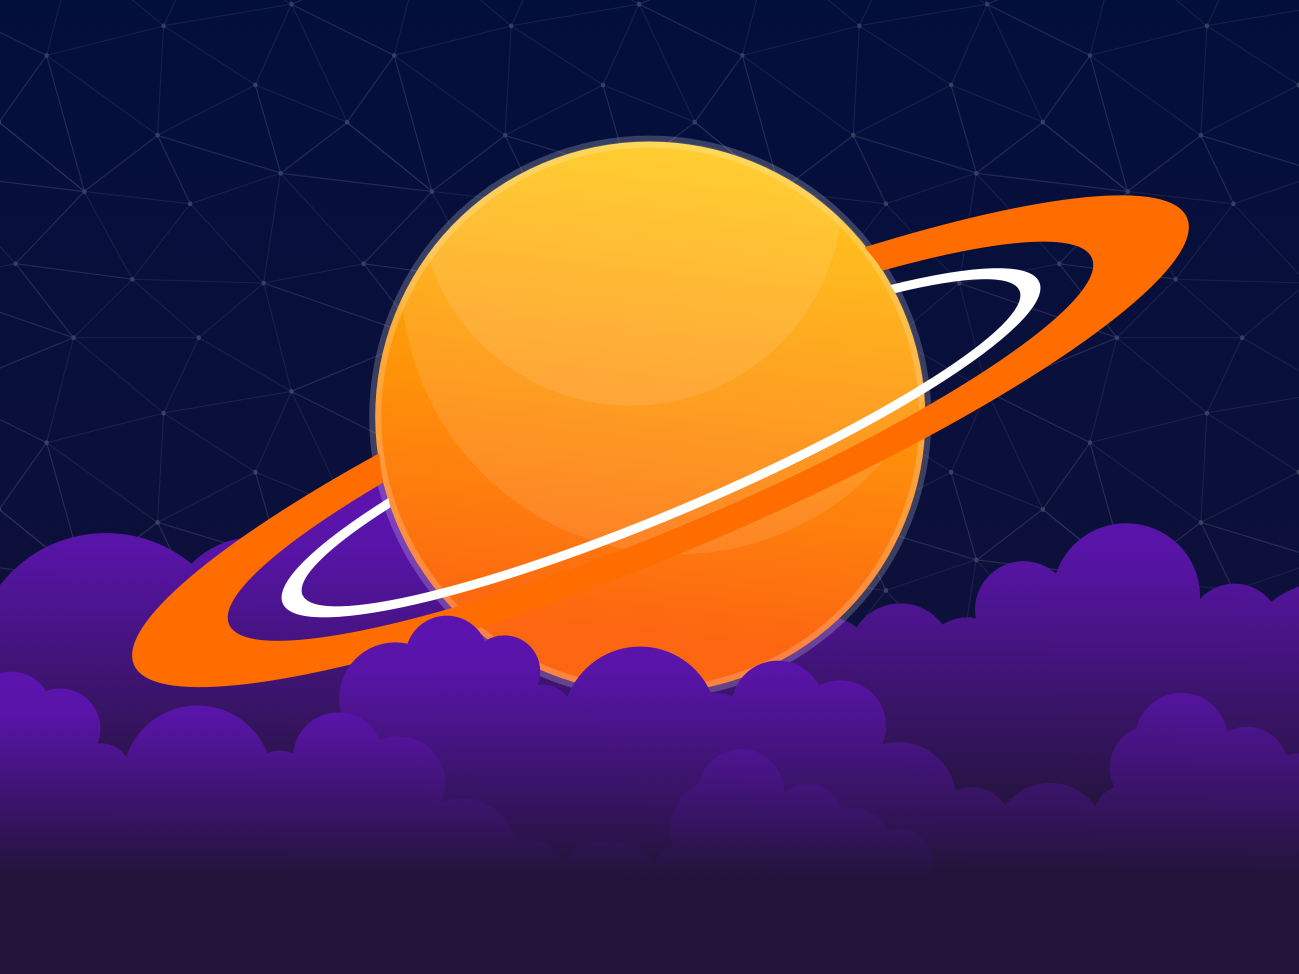 Orange Planet clouds saturn planet galaxy vector sky stars space adobe illustrator illustration